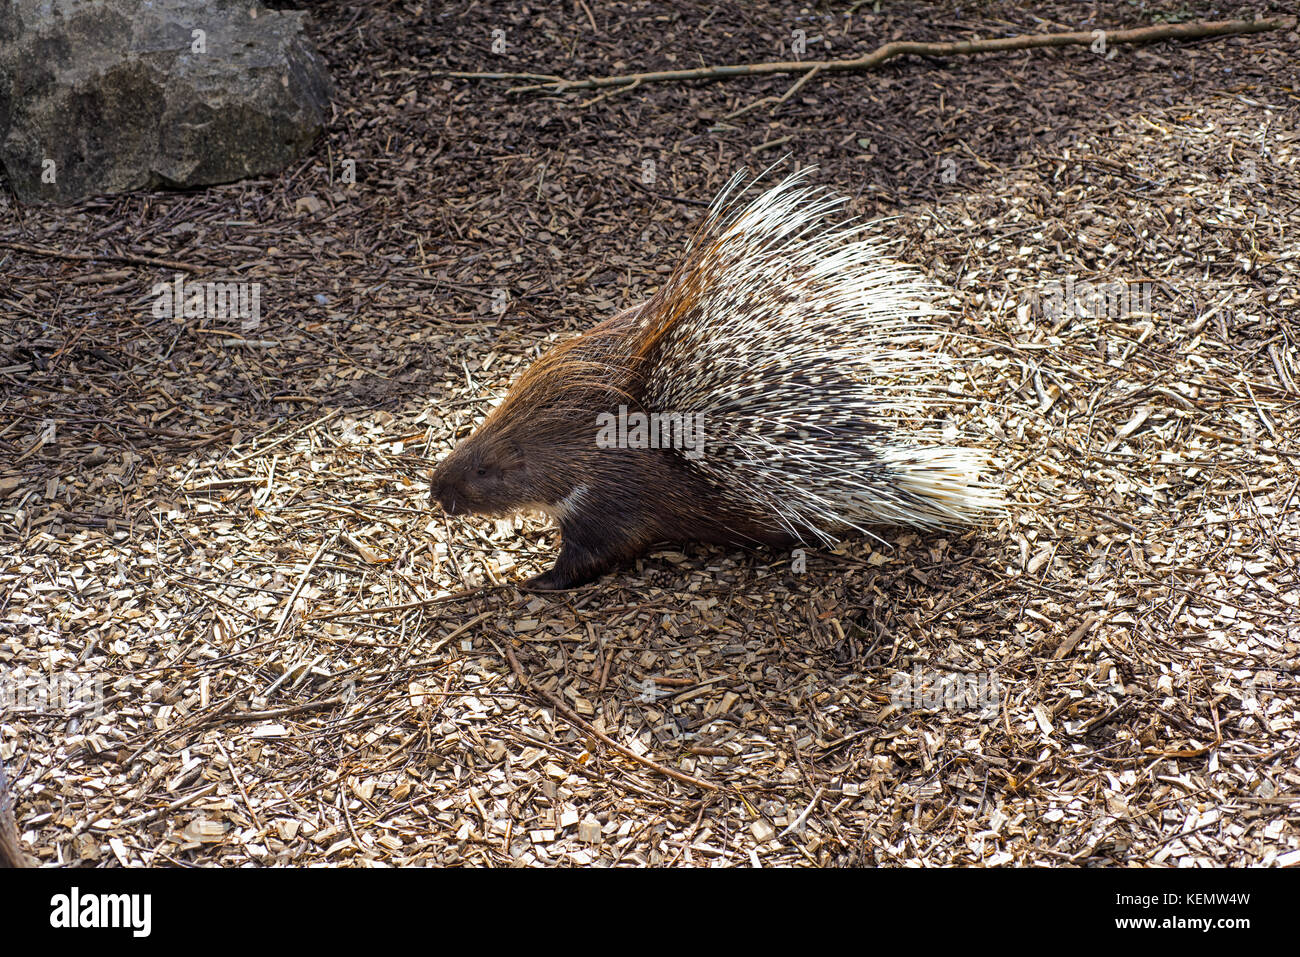 Small porcupine on the ground with sawdust. - Stock Image